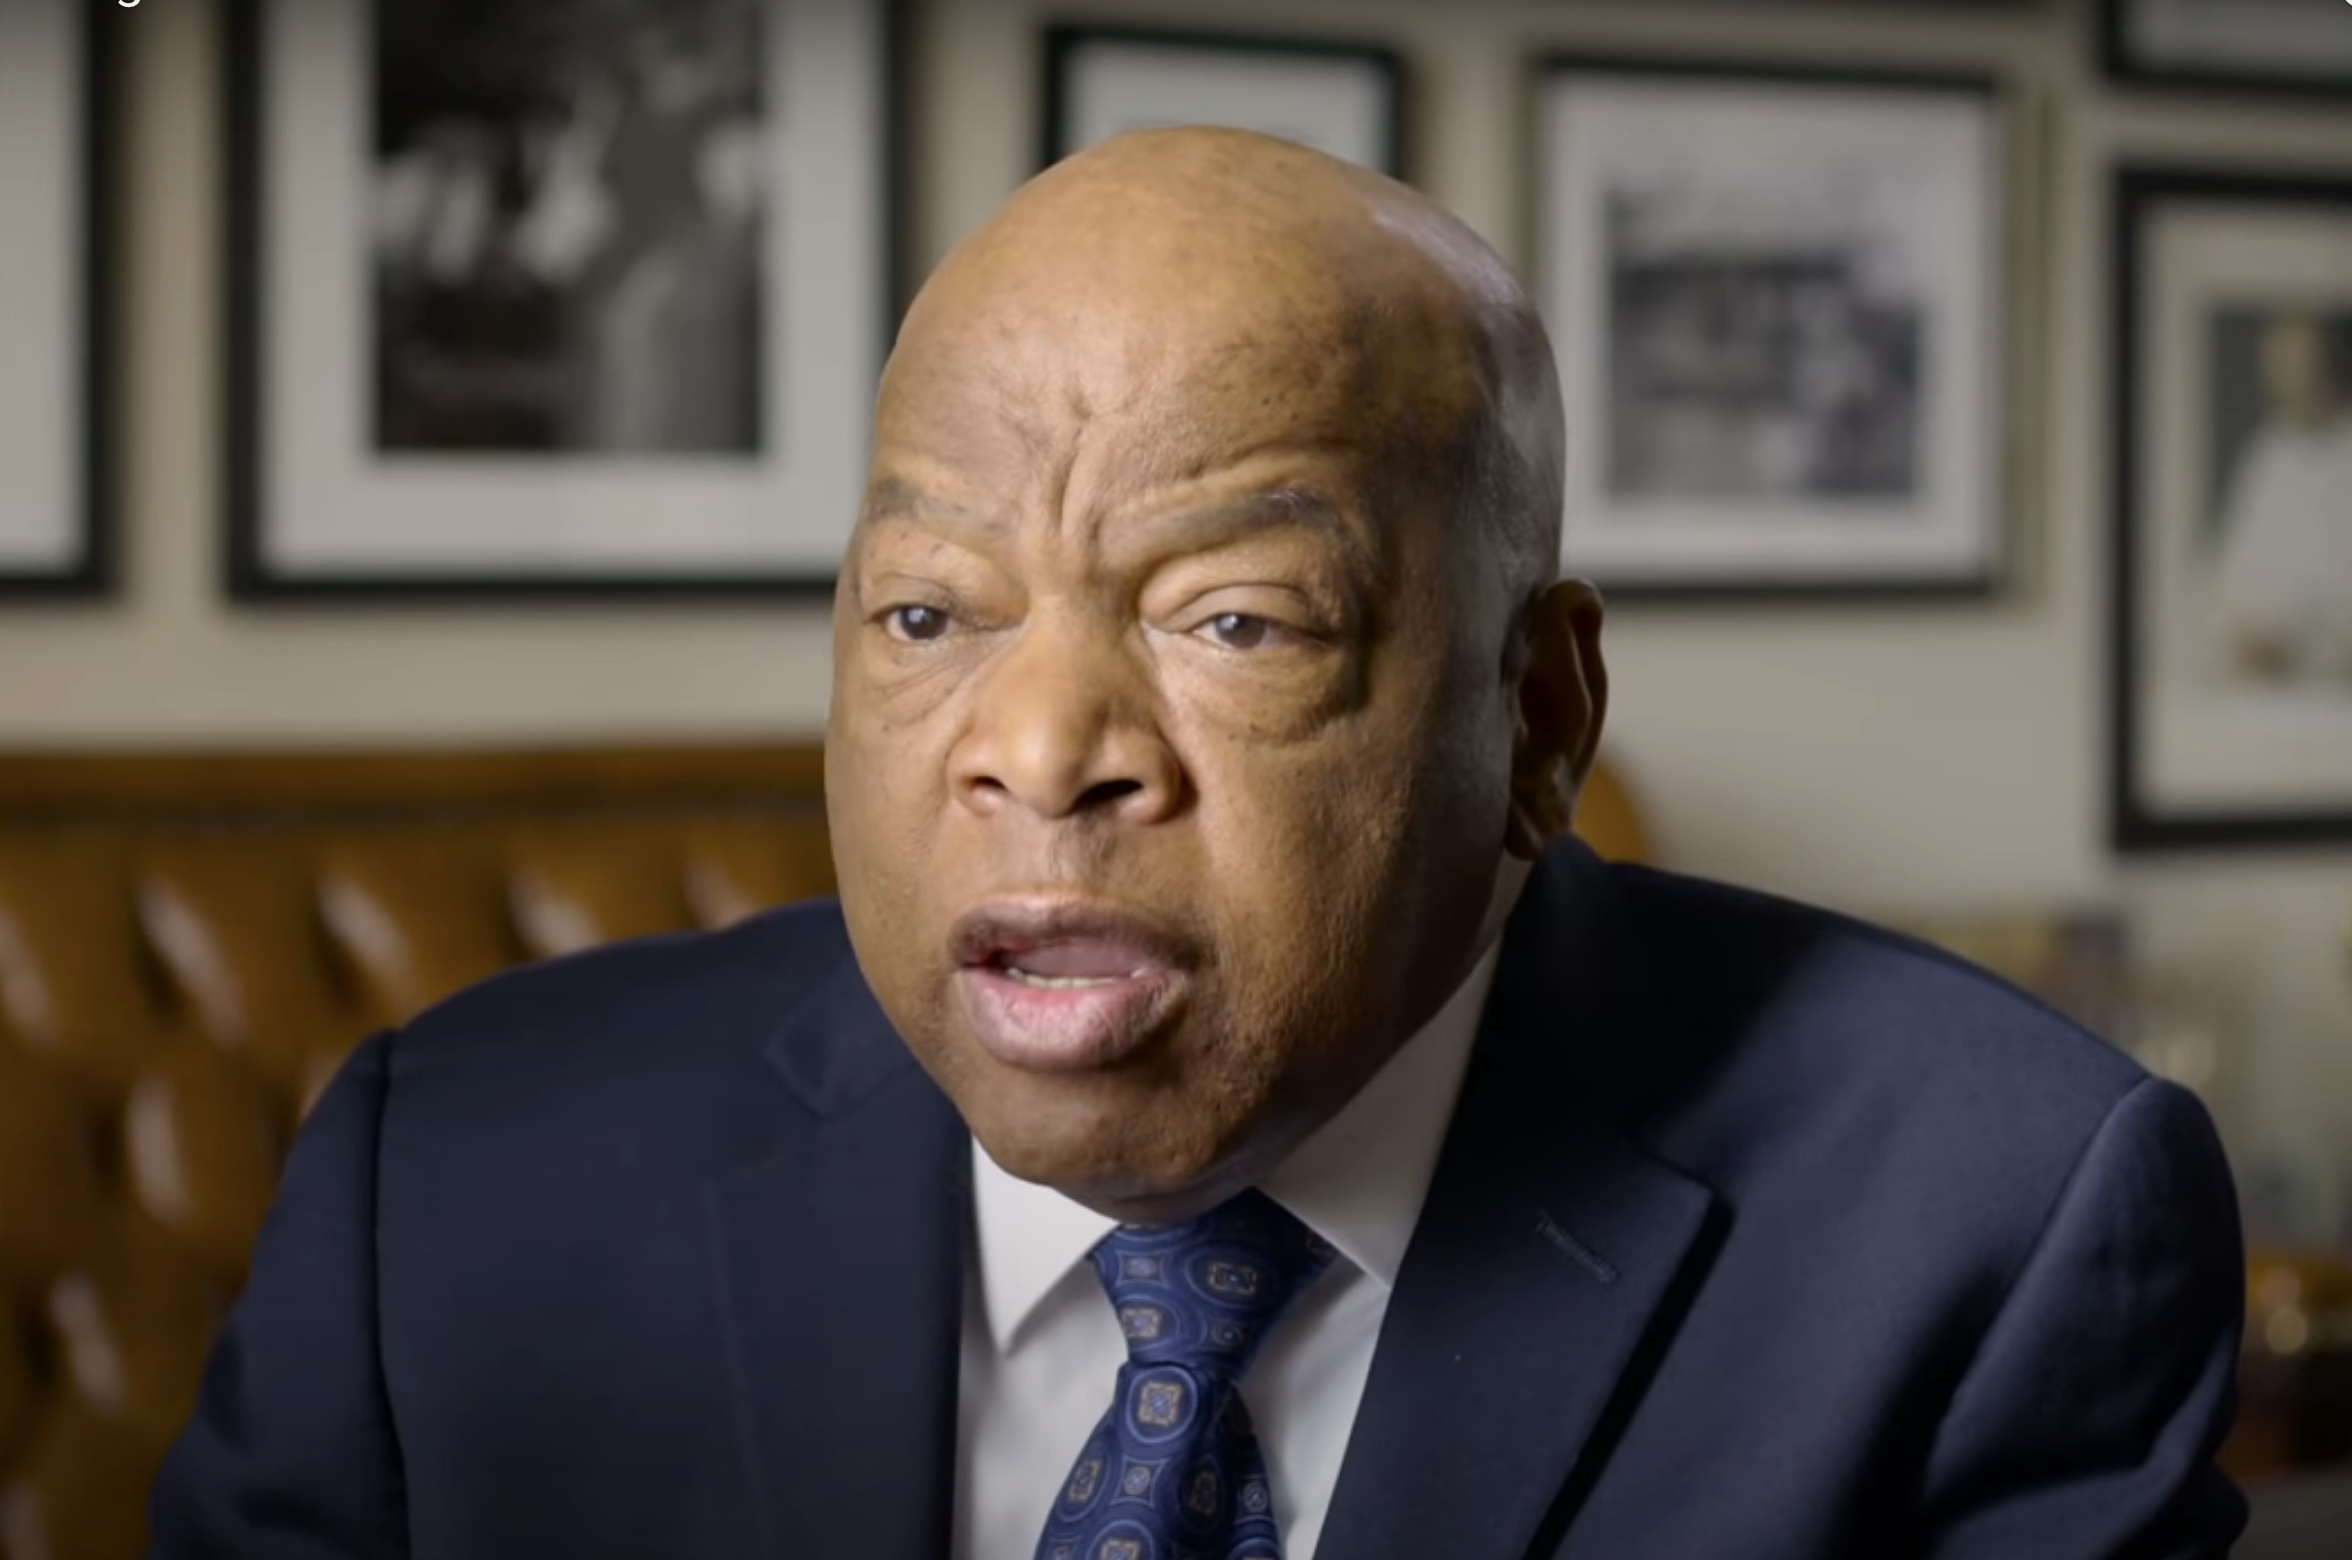 Watch John Lewis Speak on Rights and Justice in America